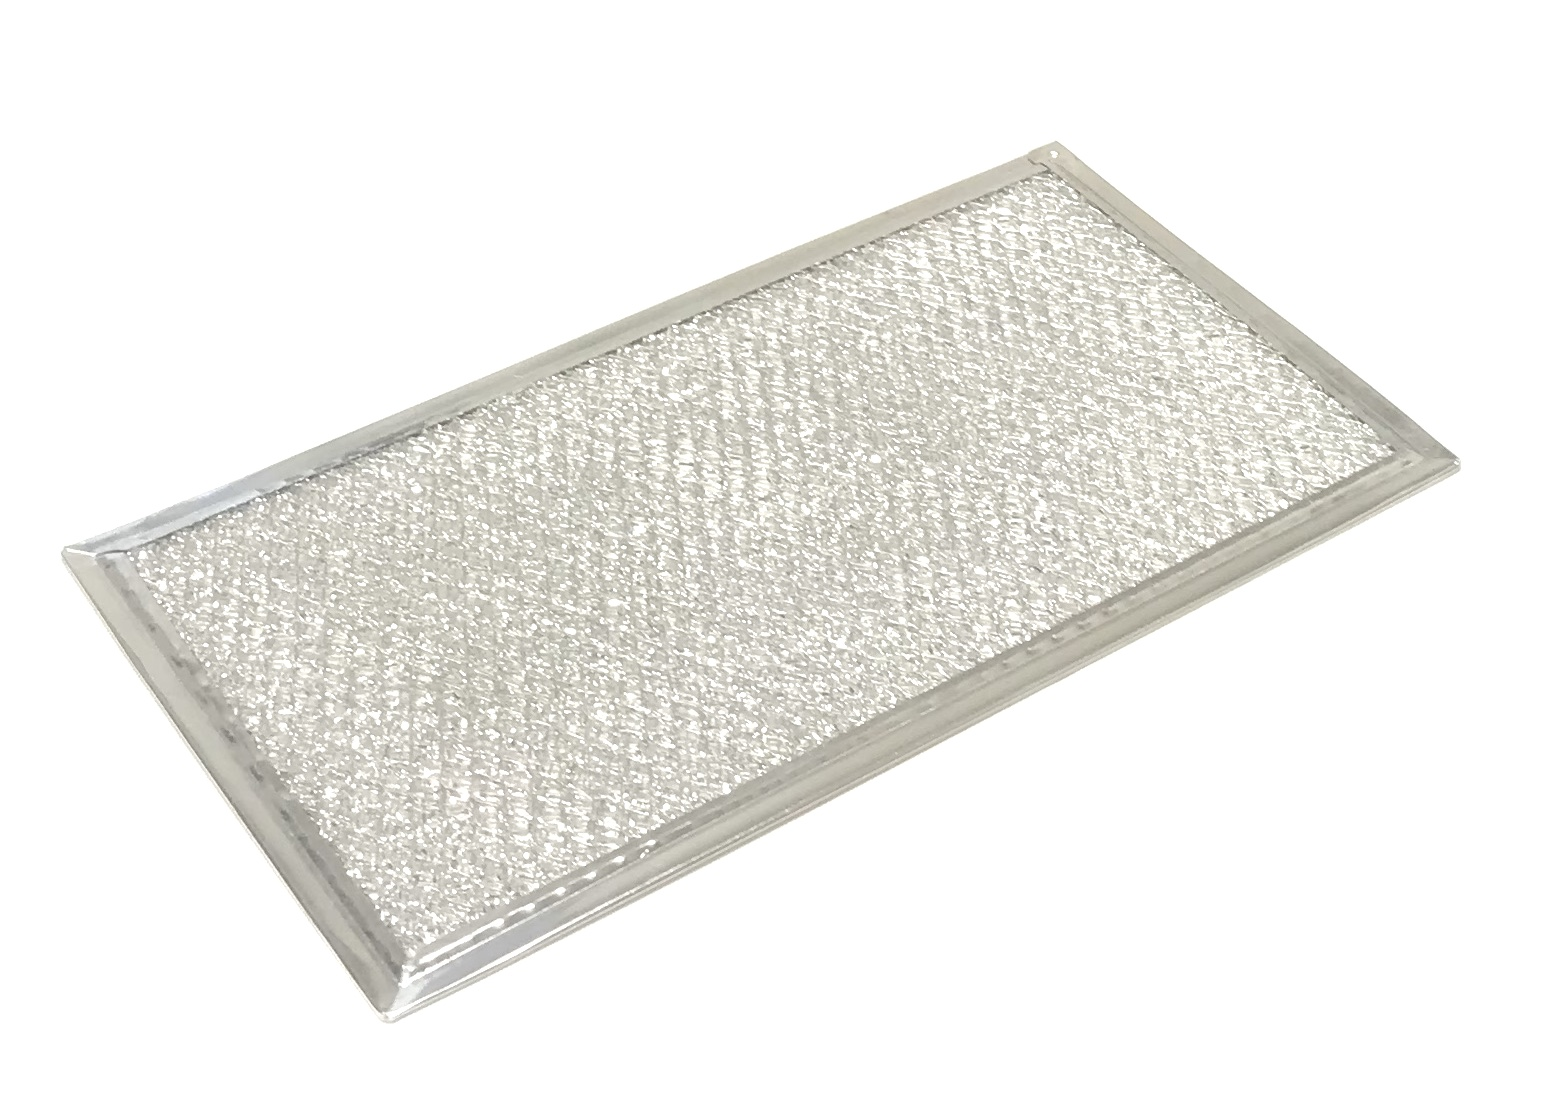 oem whirlpool microwave grease filter originally shipped with wmh73521cs3 wmh73521cs4 wmh73521cs5